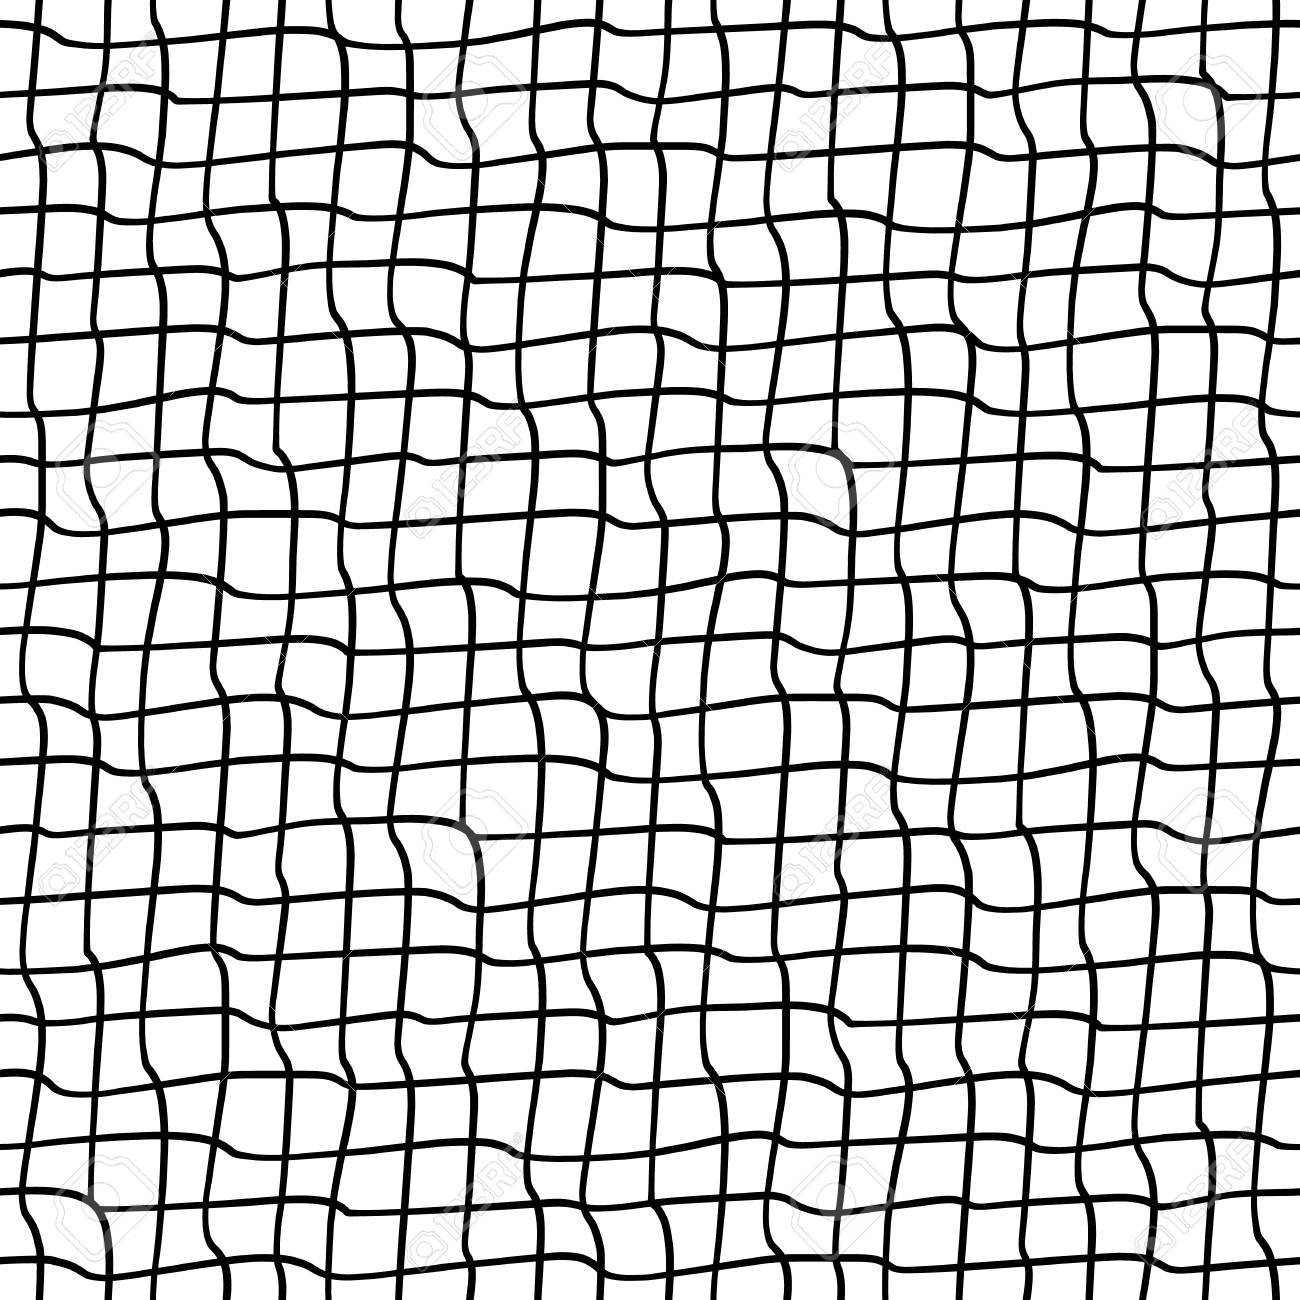 1300x1300 Seamless Pattern With Crossed Wavy Lines. Grid Texture Royalty